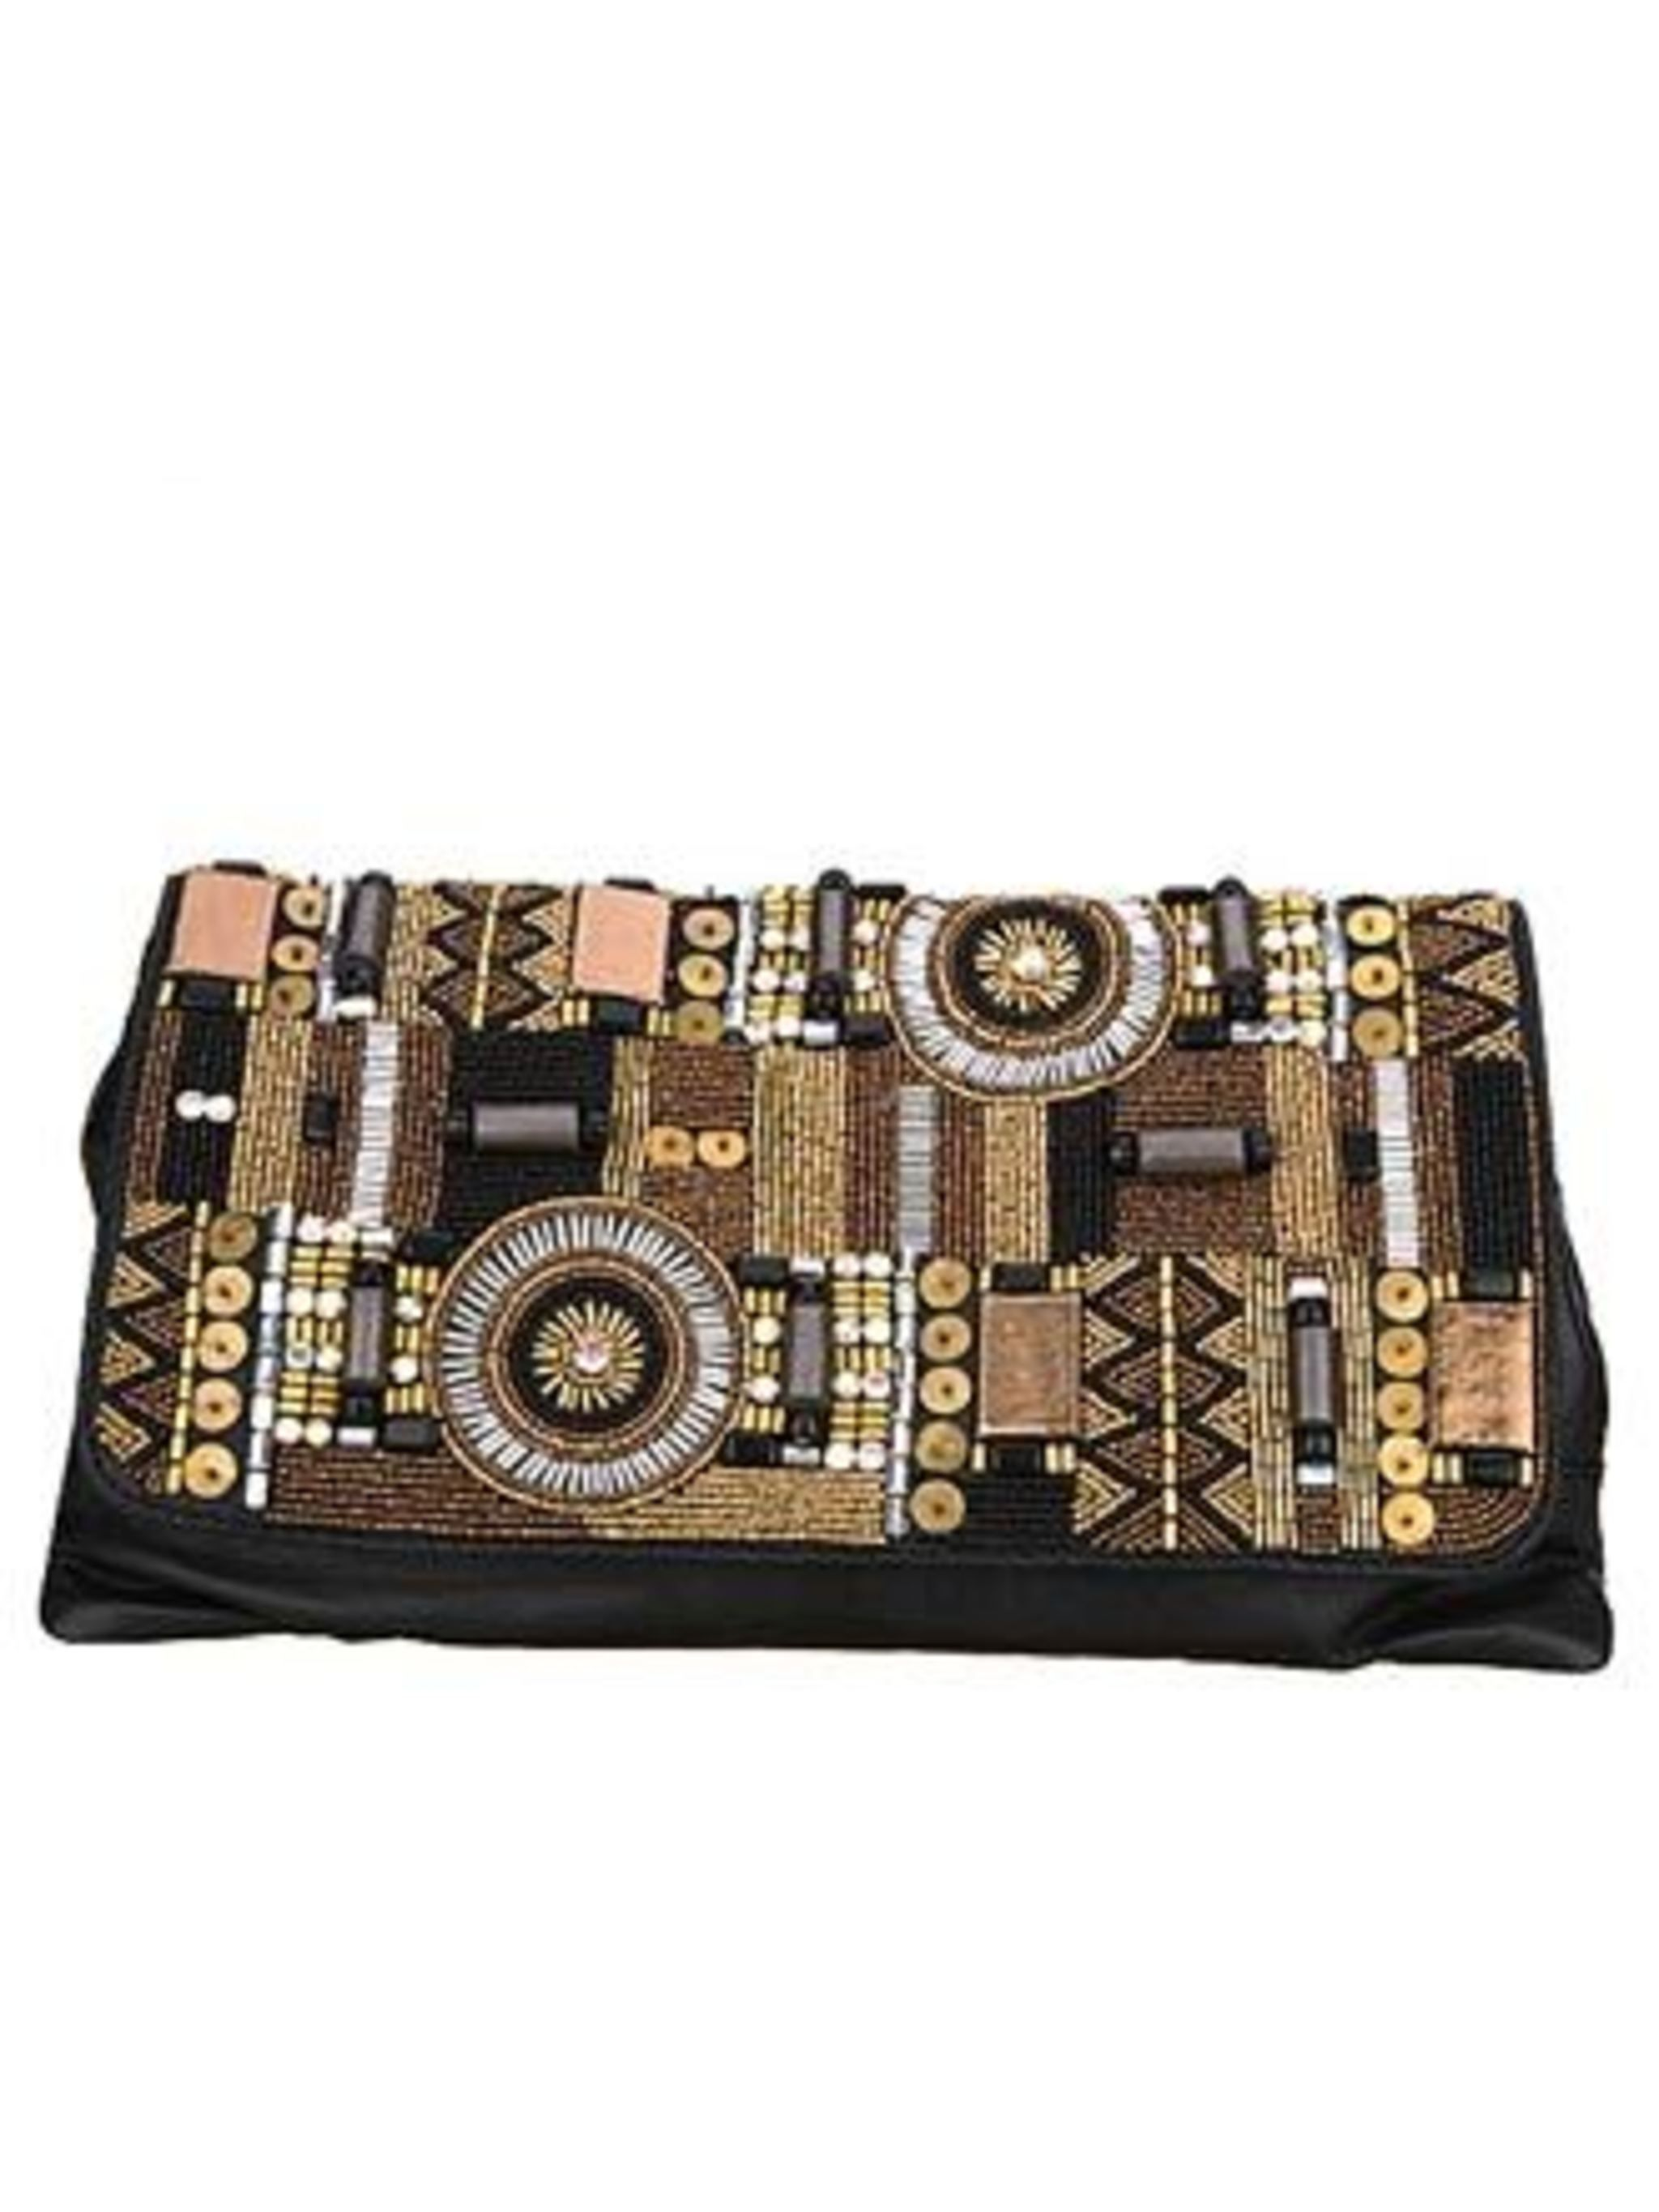 "<p>Clutch, £85 by <a href=""http://www.dune.co.uk/catalogue/style.asp?r=46&amp&#x3B;g=45&amp&#x3B;s=59&amp&#x3B;y=A09ALE00BAS039N&amp&#x3B;pc=0"">Dune</a></p>"